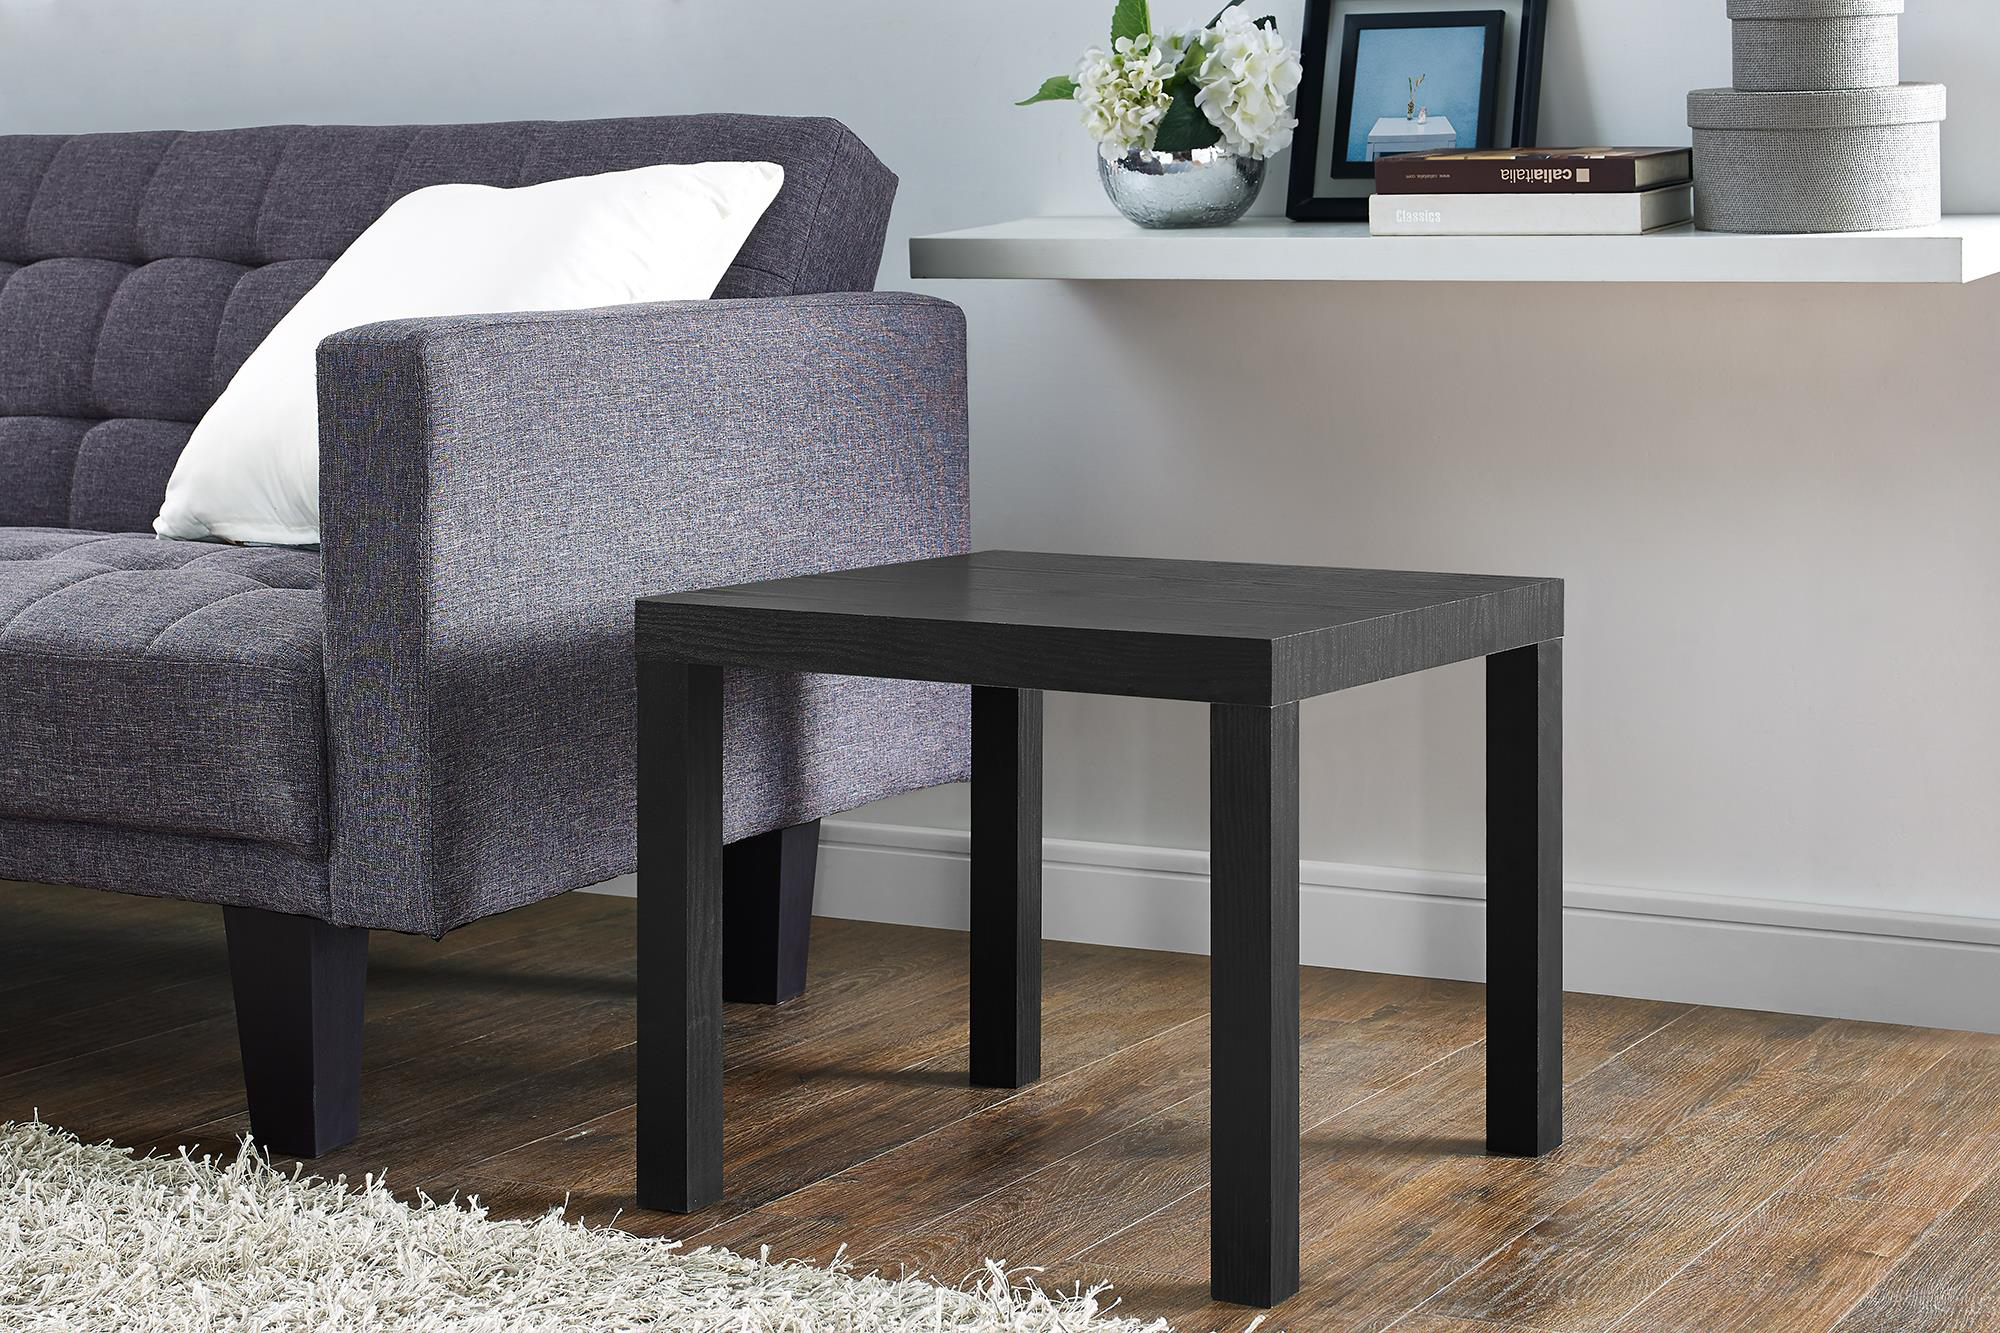 mainstays parsons square end table multiple colors dhp modern black wood grain dark blue coffee montreal white porch pallet patio ideas best dining room tables rustic ethan allen